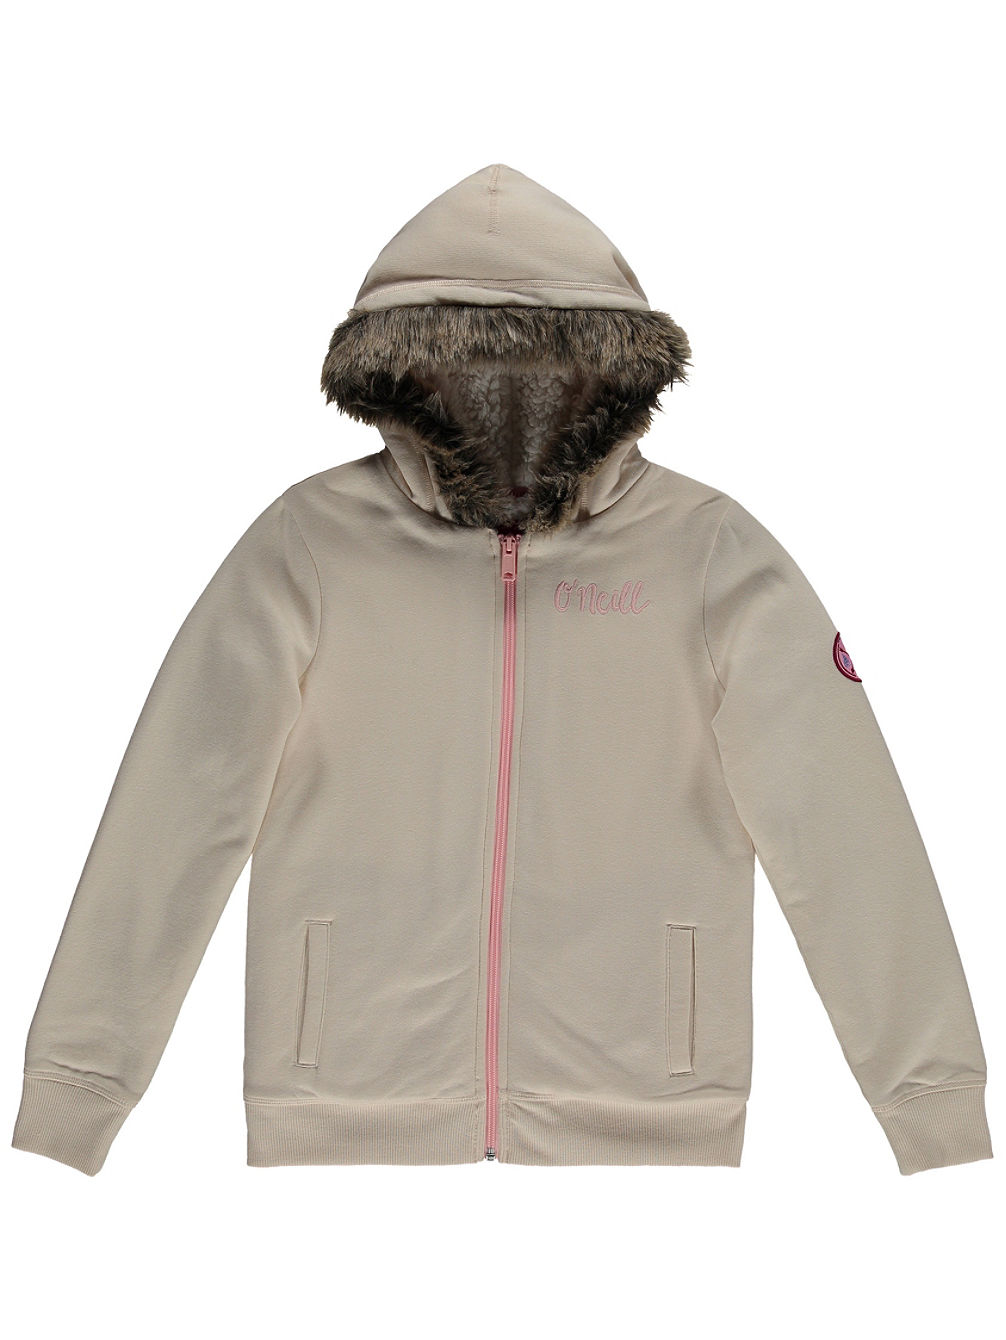 Emerald Bay Sherpa Zip Hoodie Girls